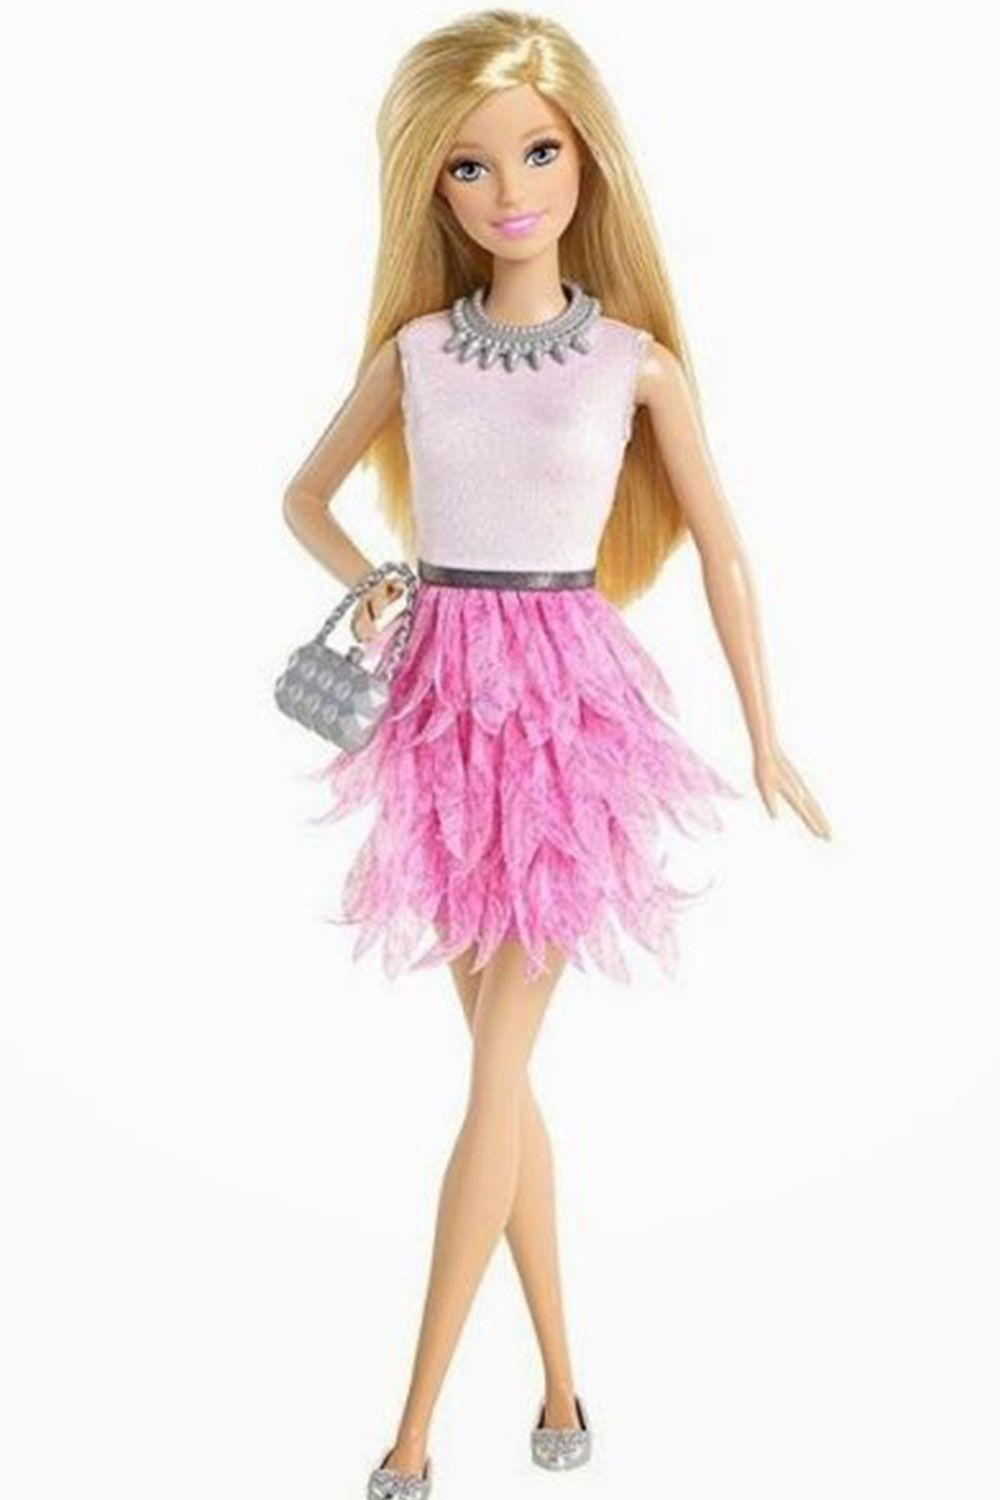 40 barbie doll facts history and trivia about barbies - Barbie